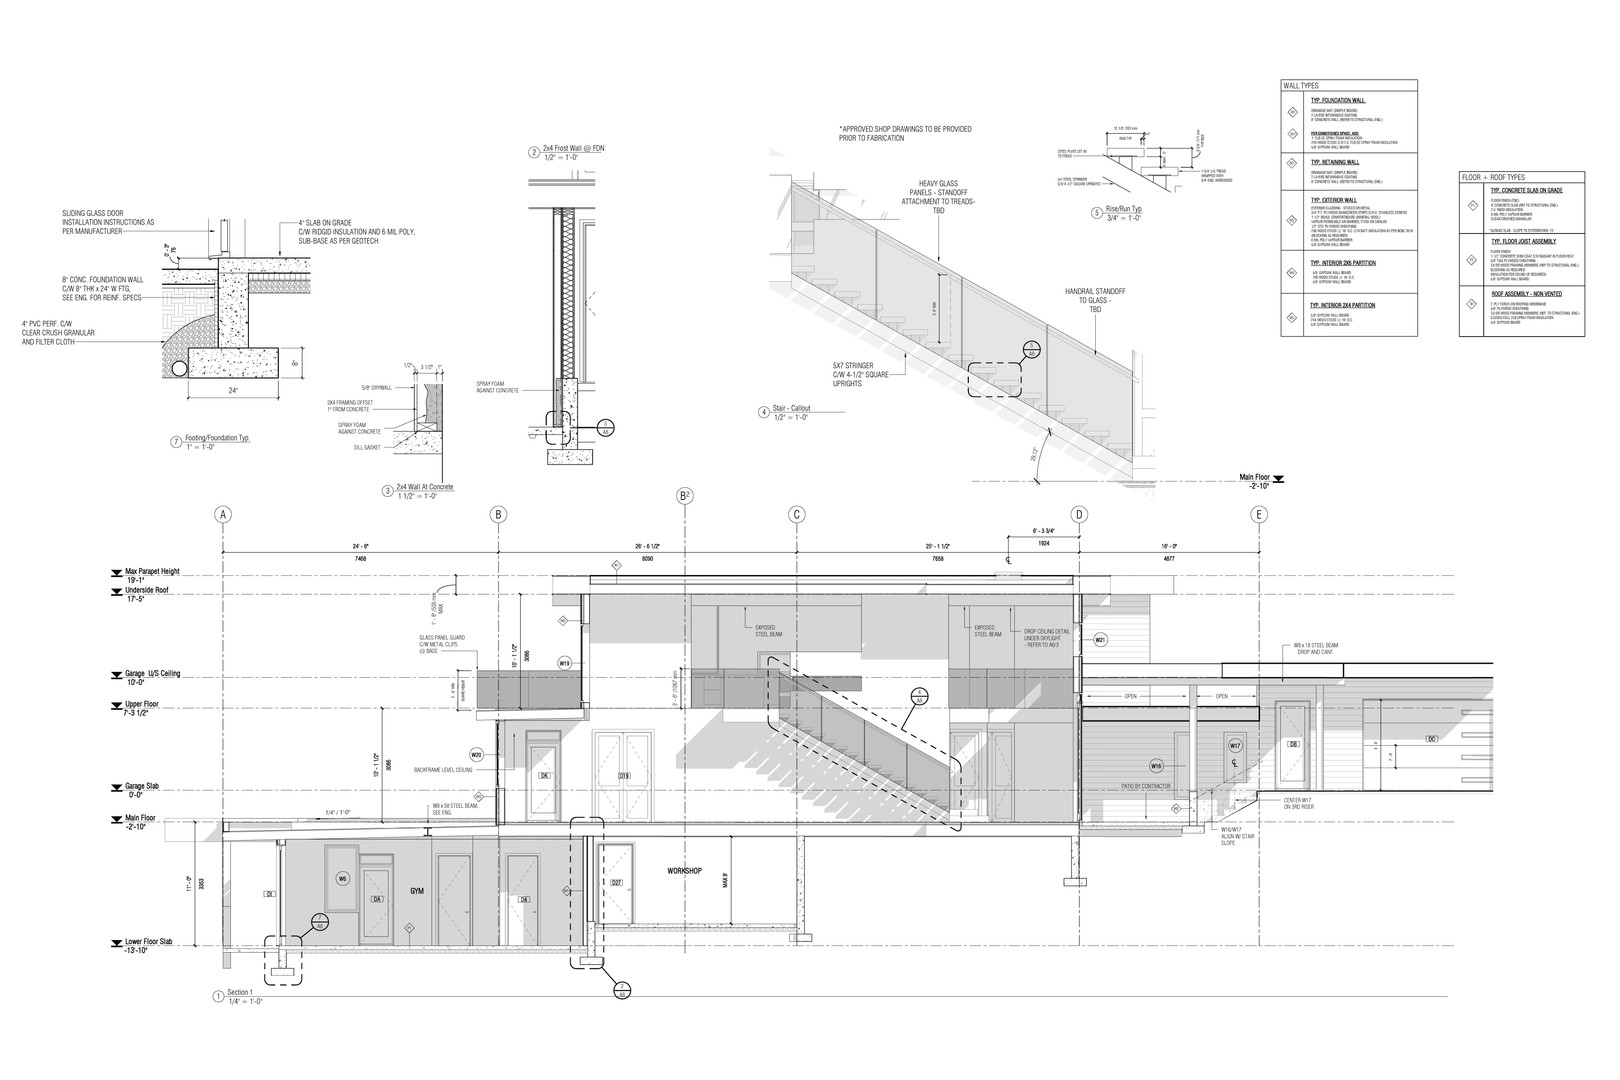 Architectural - Section + Details